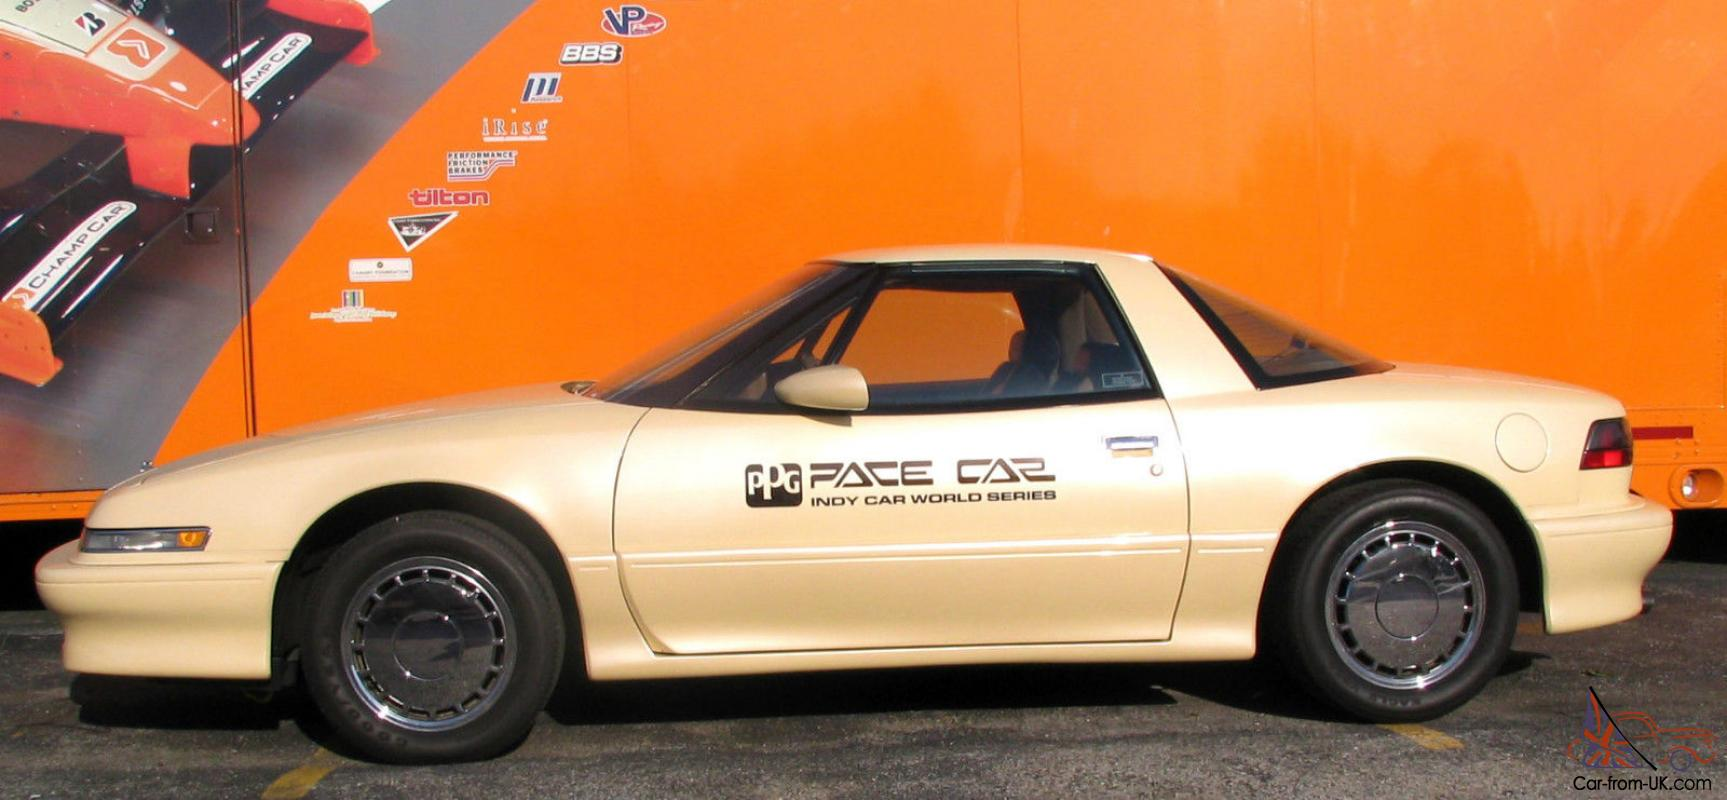 Buick Reatta – 1988 PPG Pace Car – PPG Pace Cars